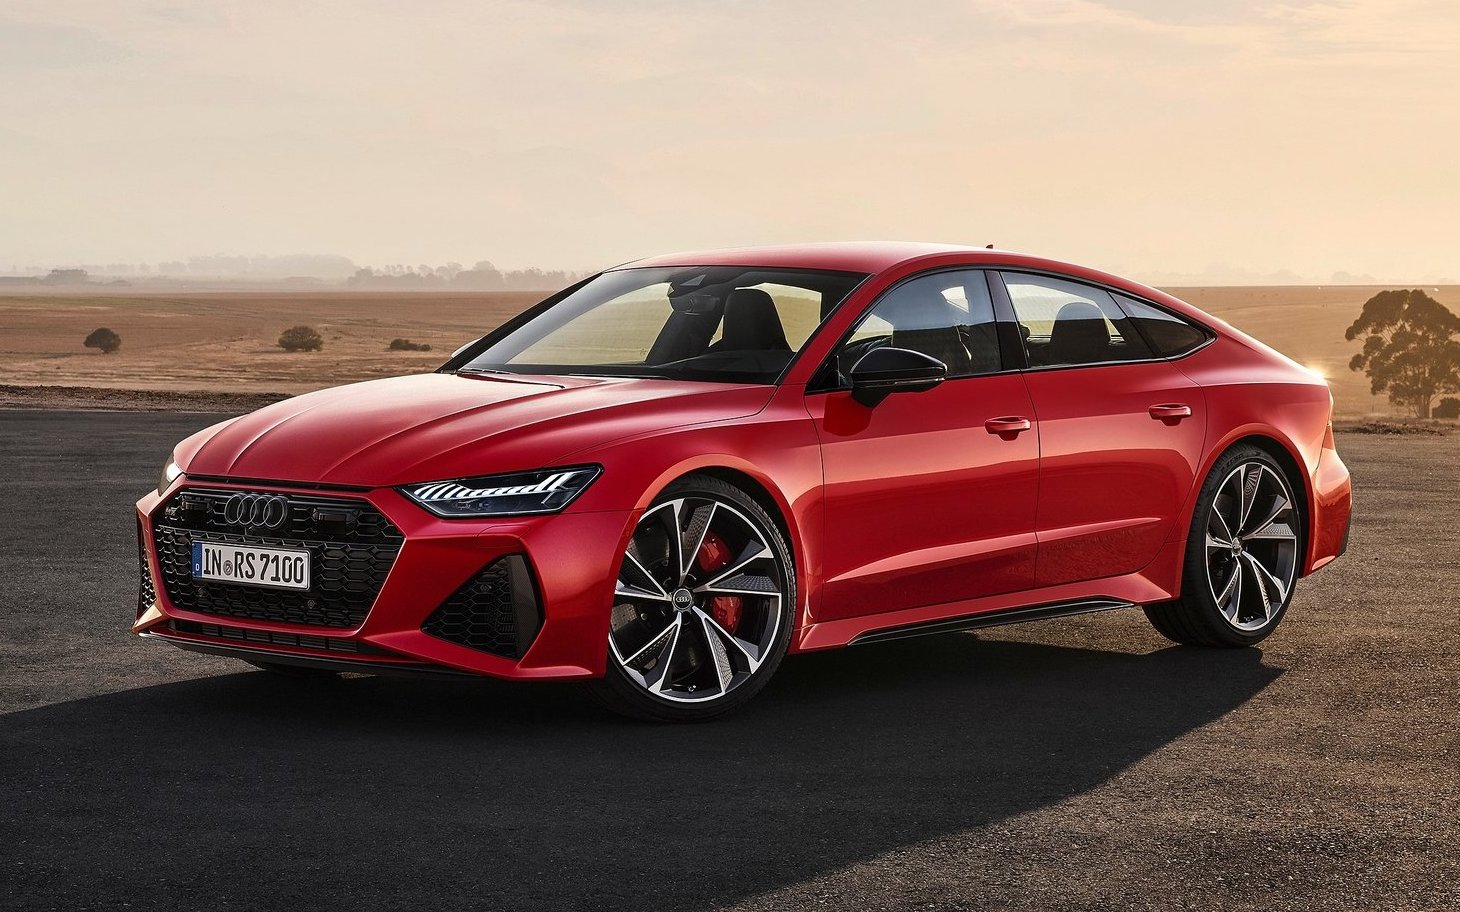 2020 Audi Rs 7 Sportback Revealed Gets Rs 6 V8 Power